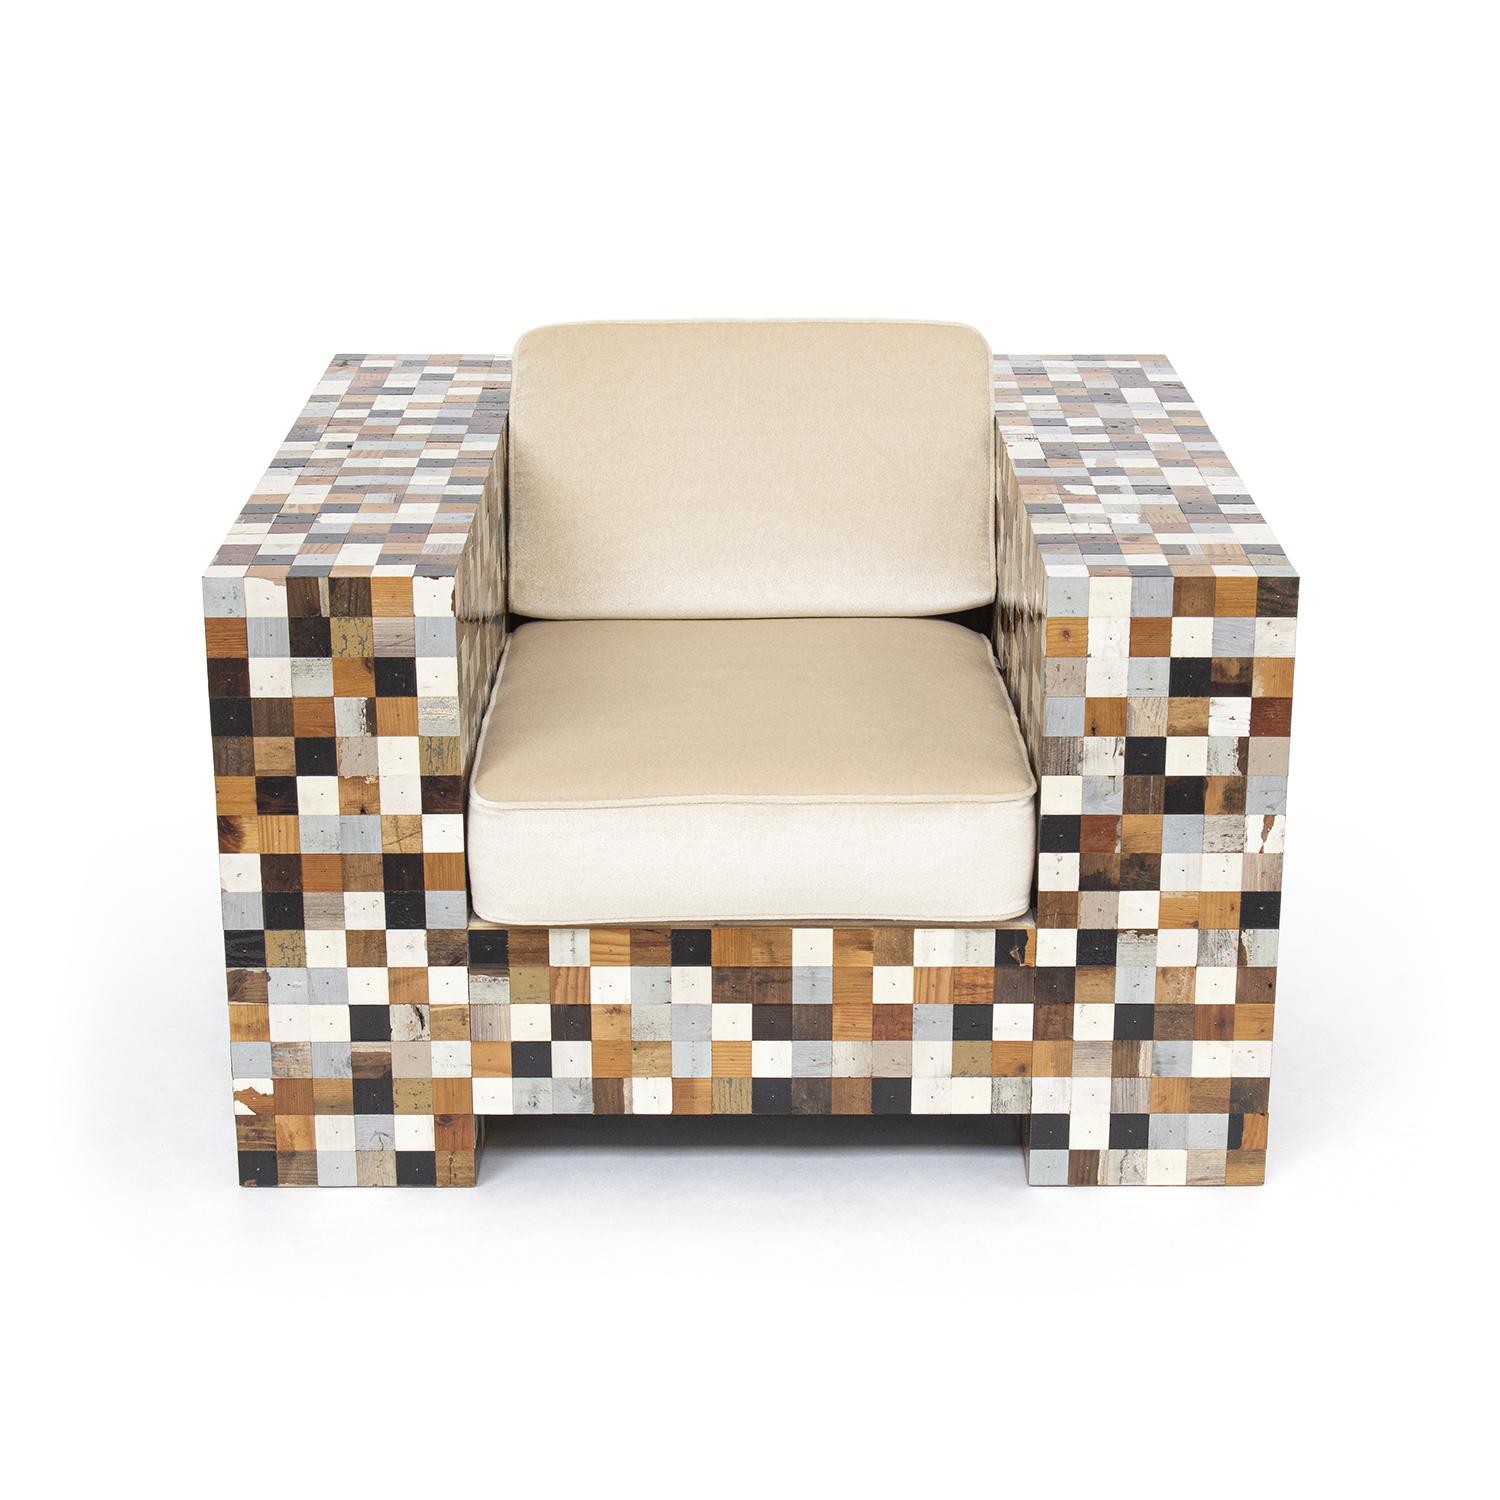 01_40x40_Waste_waste_Armchair_upholstered_front01_THUMBNAIL